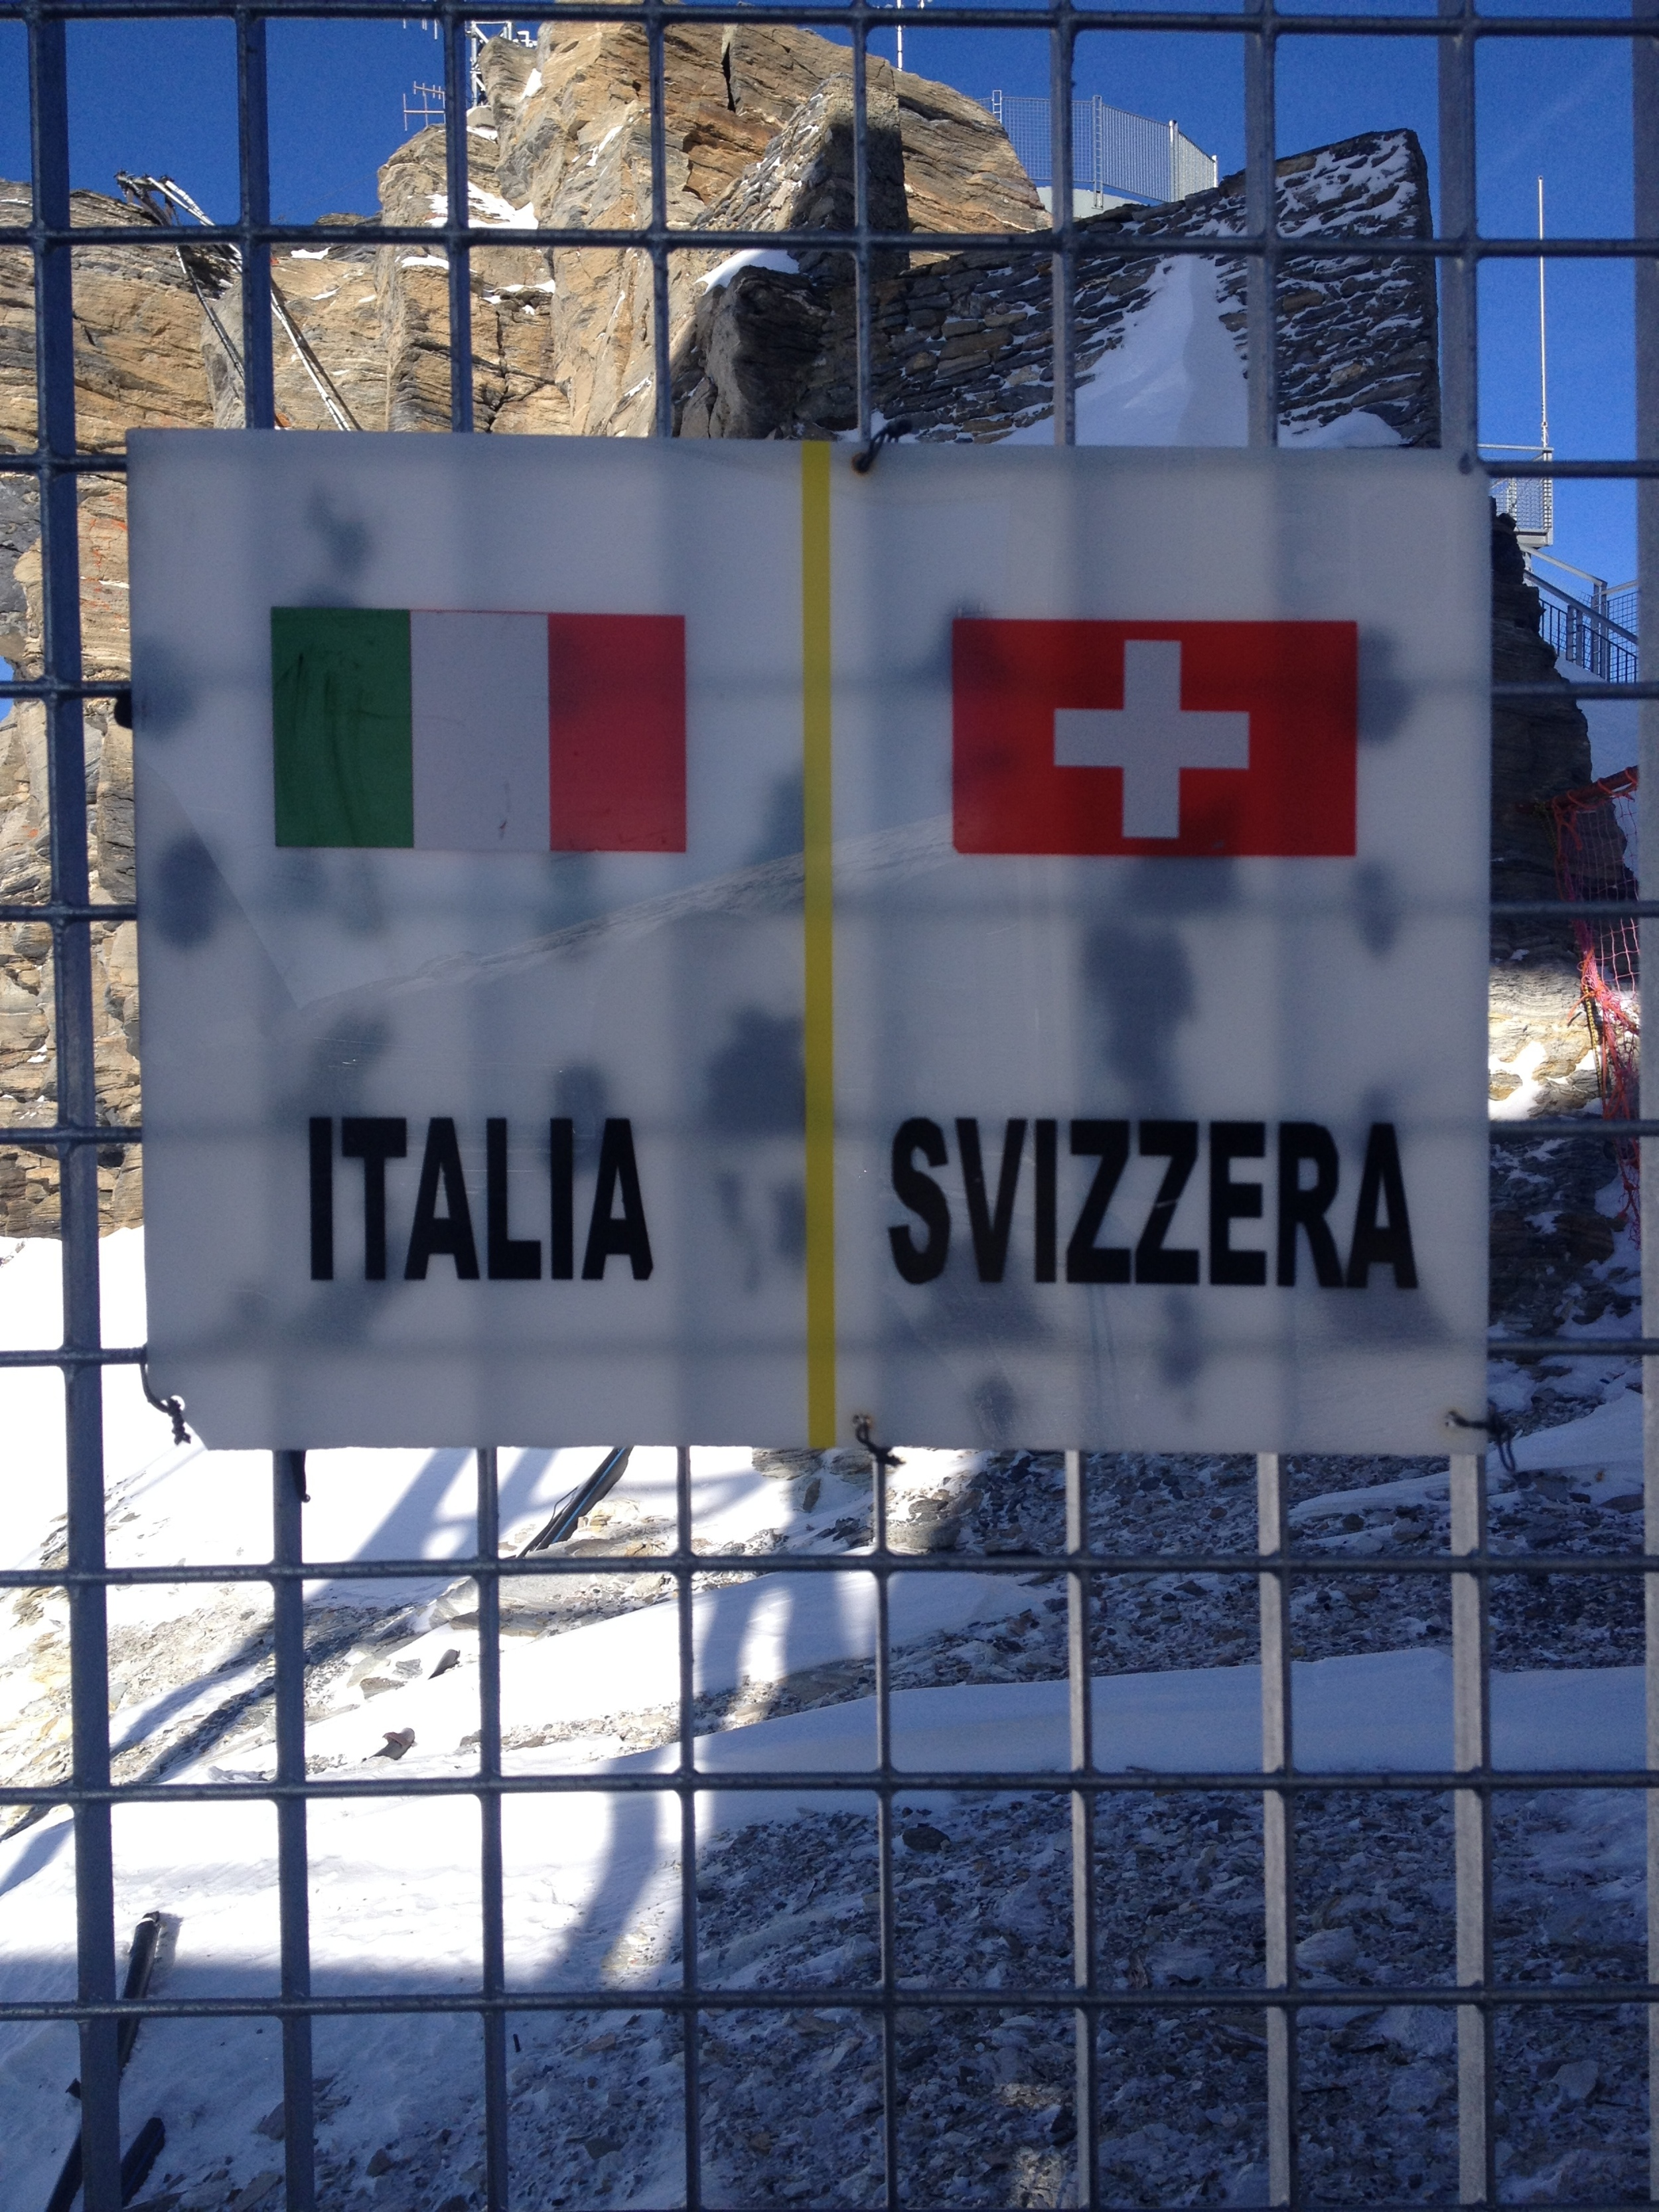 Ski from one country to the next